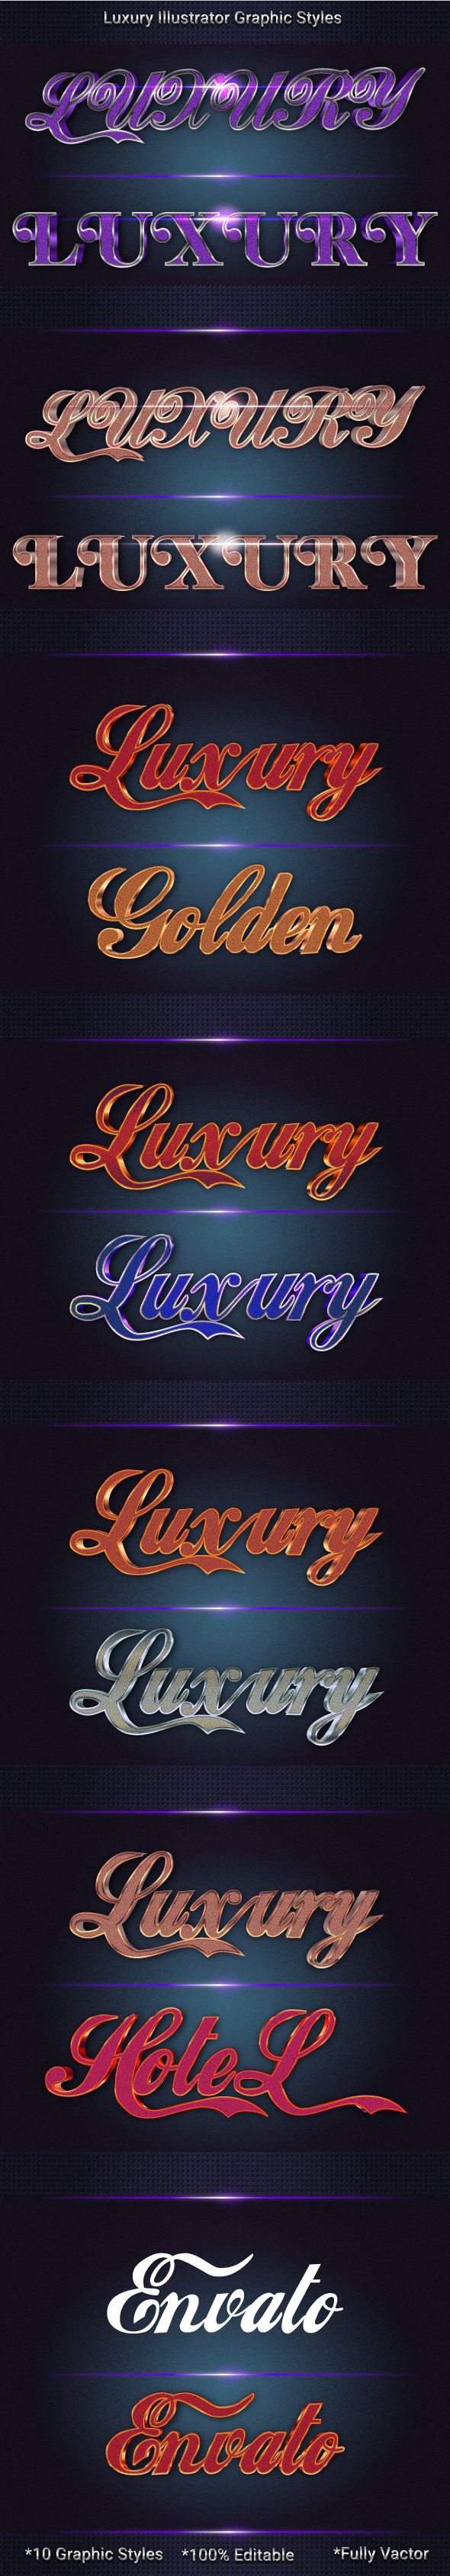 Logo Text Graphics, Designs & Templates from GraphicRiver